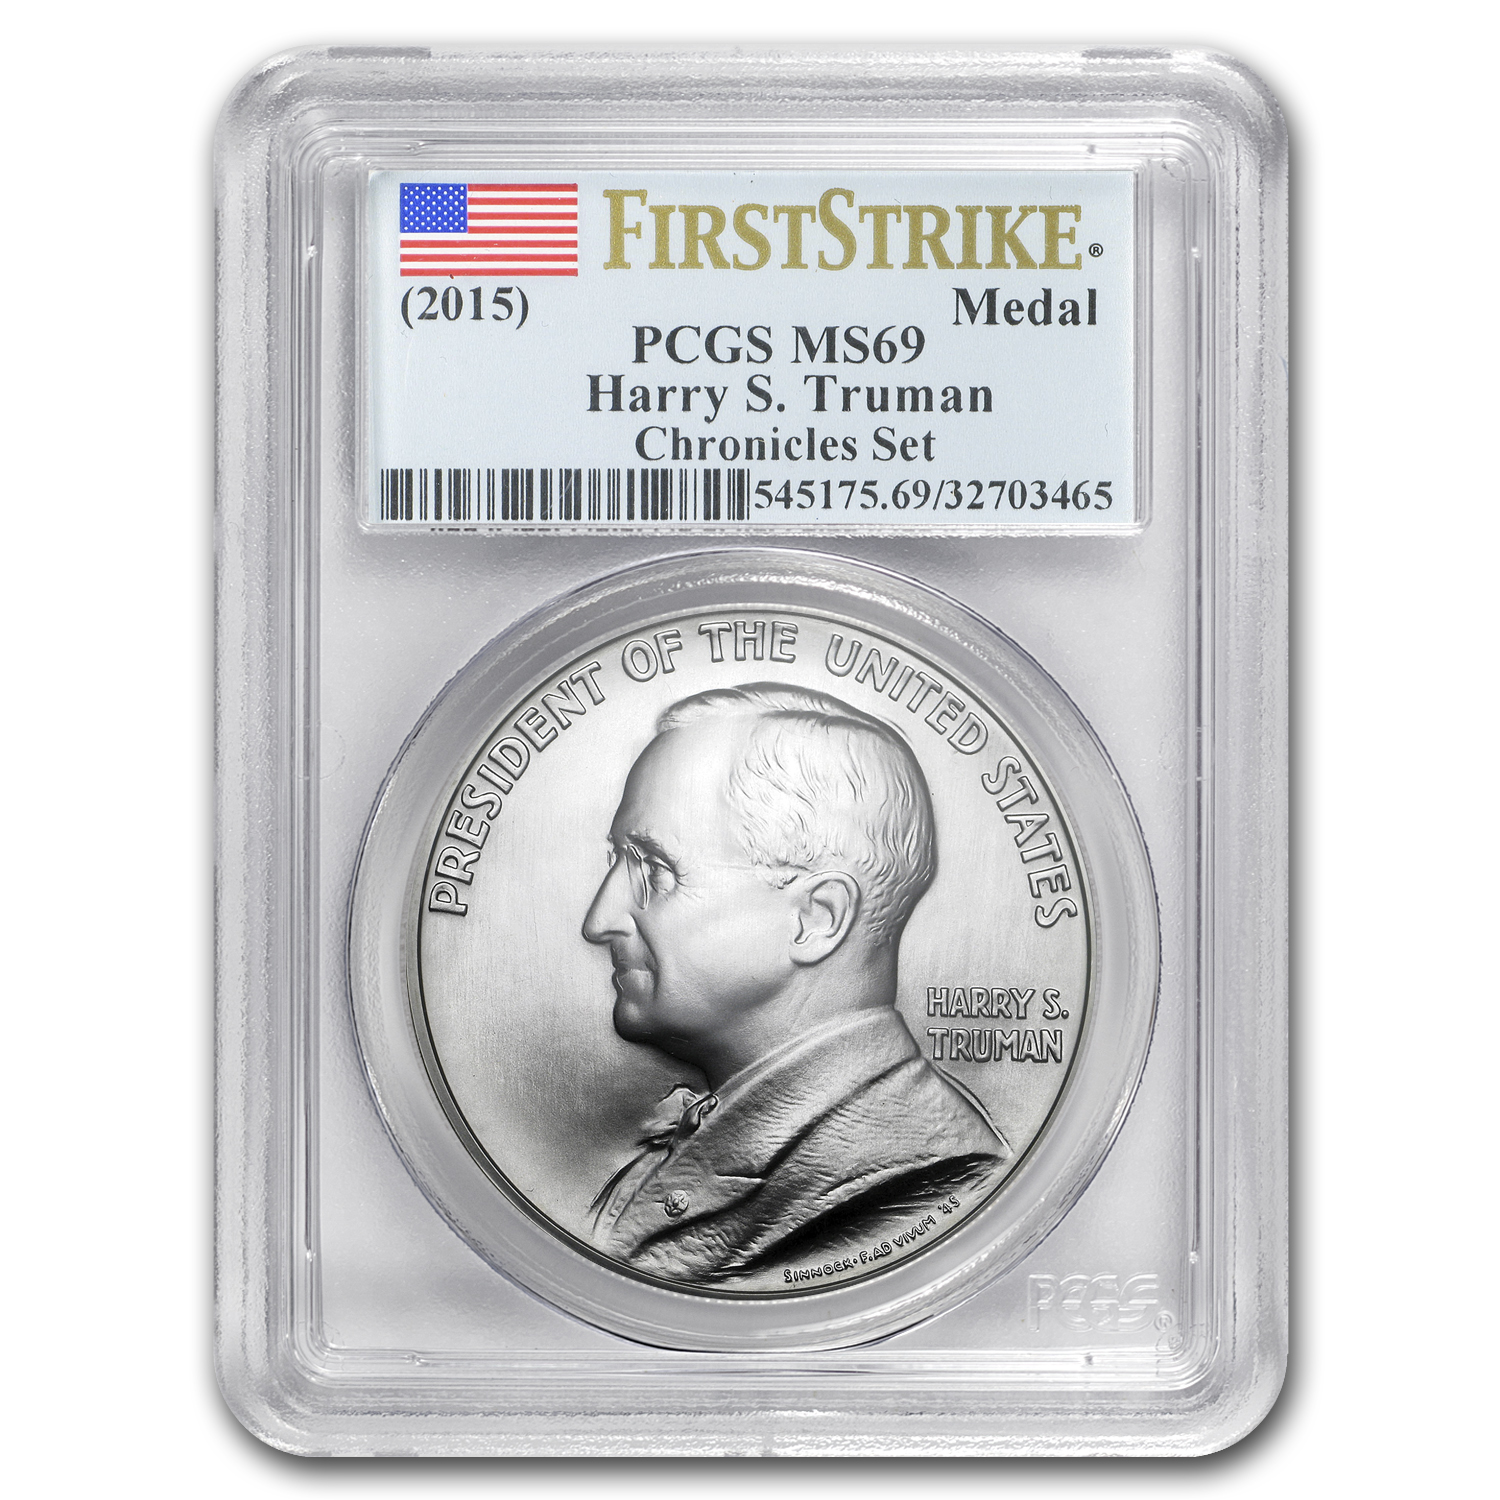 2015 Truman Coin & Chronicles Set PCGS MS-69, PR-69 First Strike